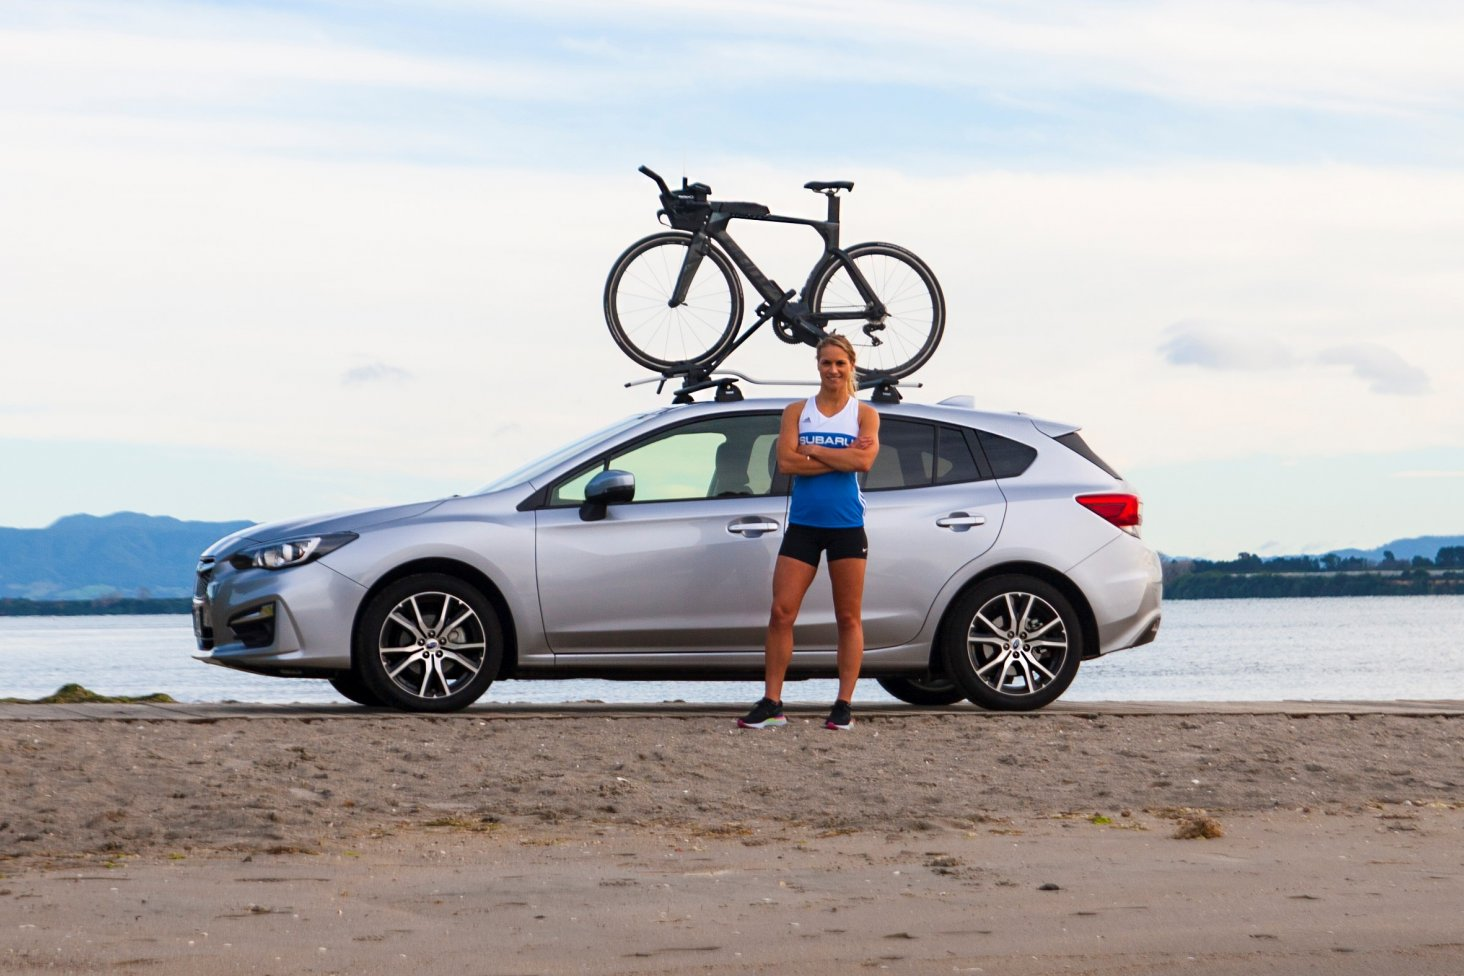 Subaru brand ambassador Hannah Wells trains 20-plus hours a week - travelling from her Tauranga hometown to race - and also fits in a four-days-a-week role as an engineering research fellow at Massey University. Photo Credit: Paul Brunskill